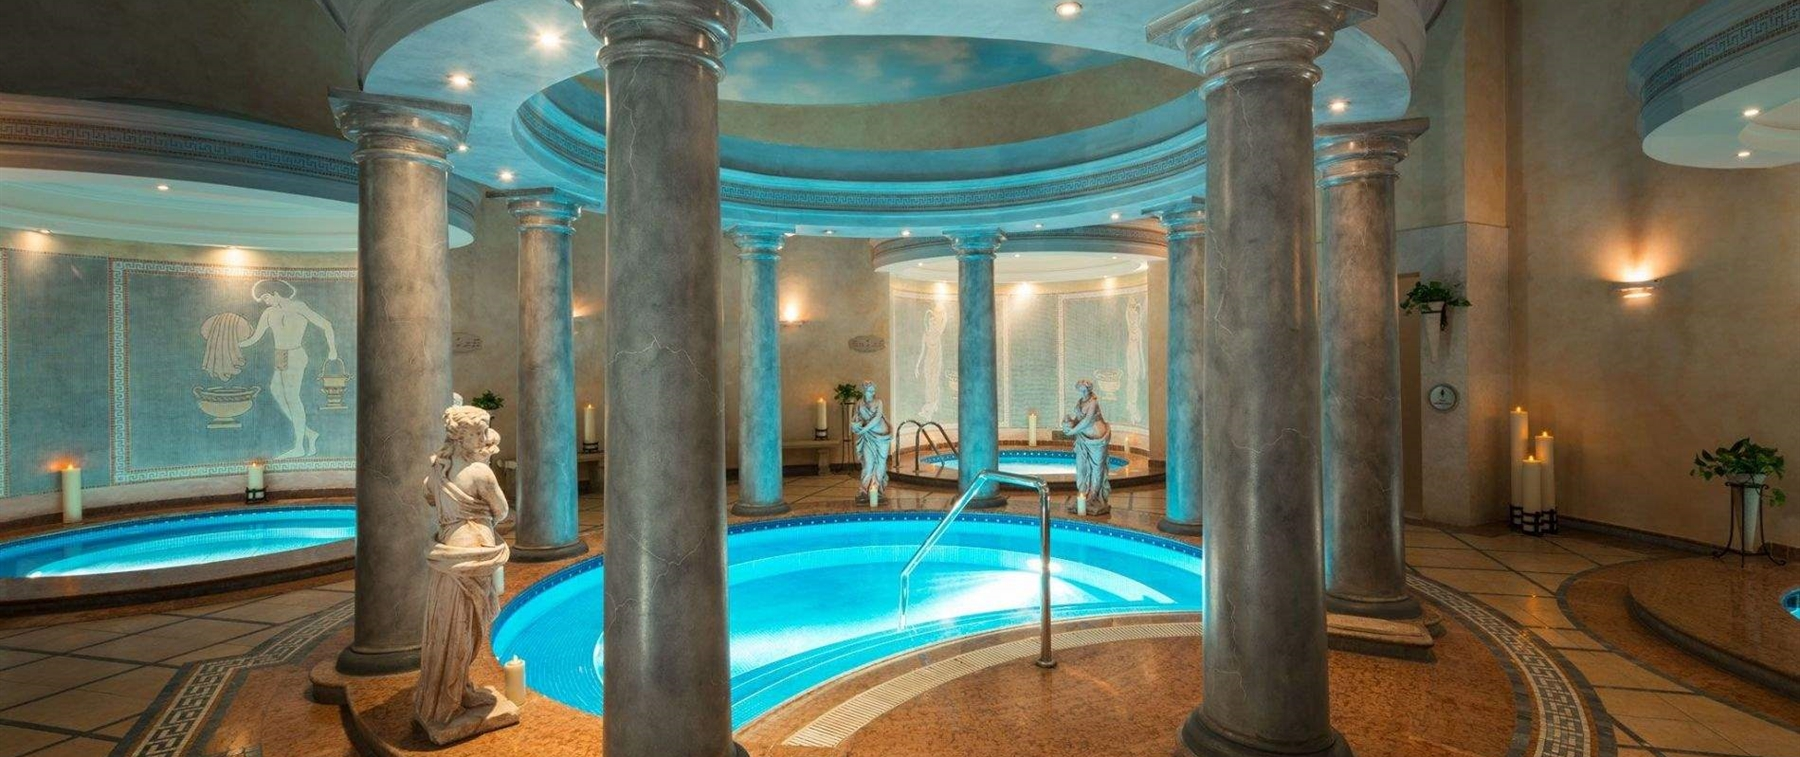 Caracalla Spa Le Royal Méridien 8910